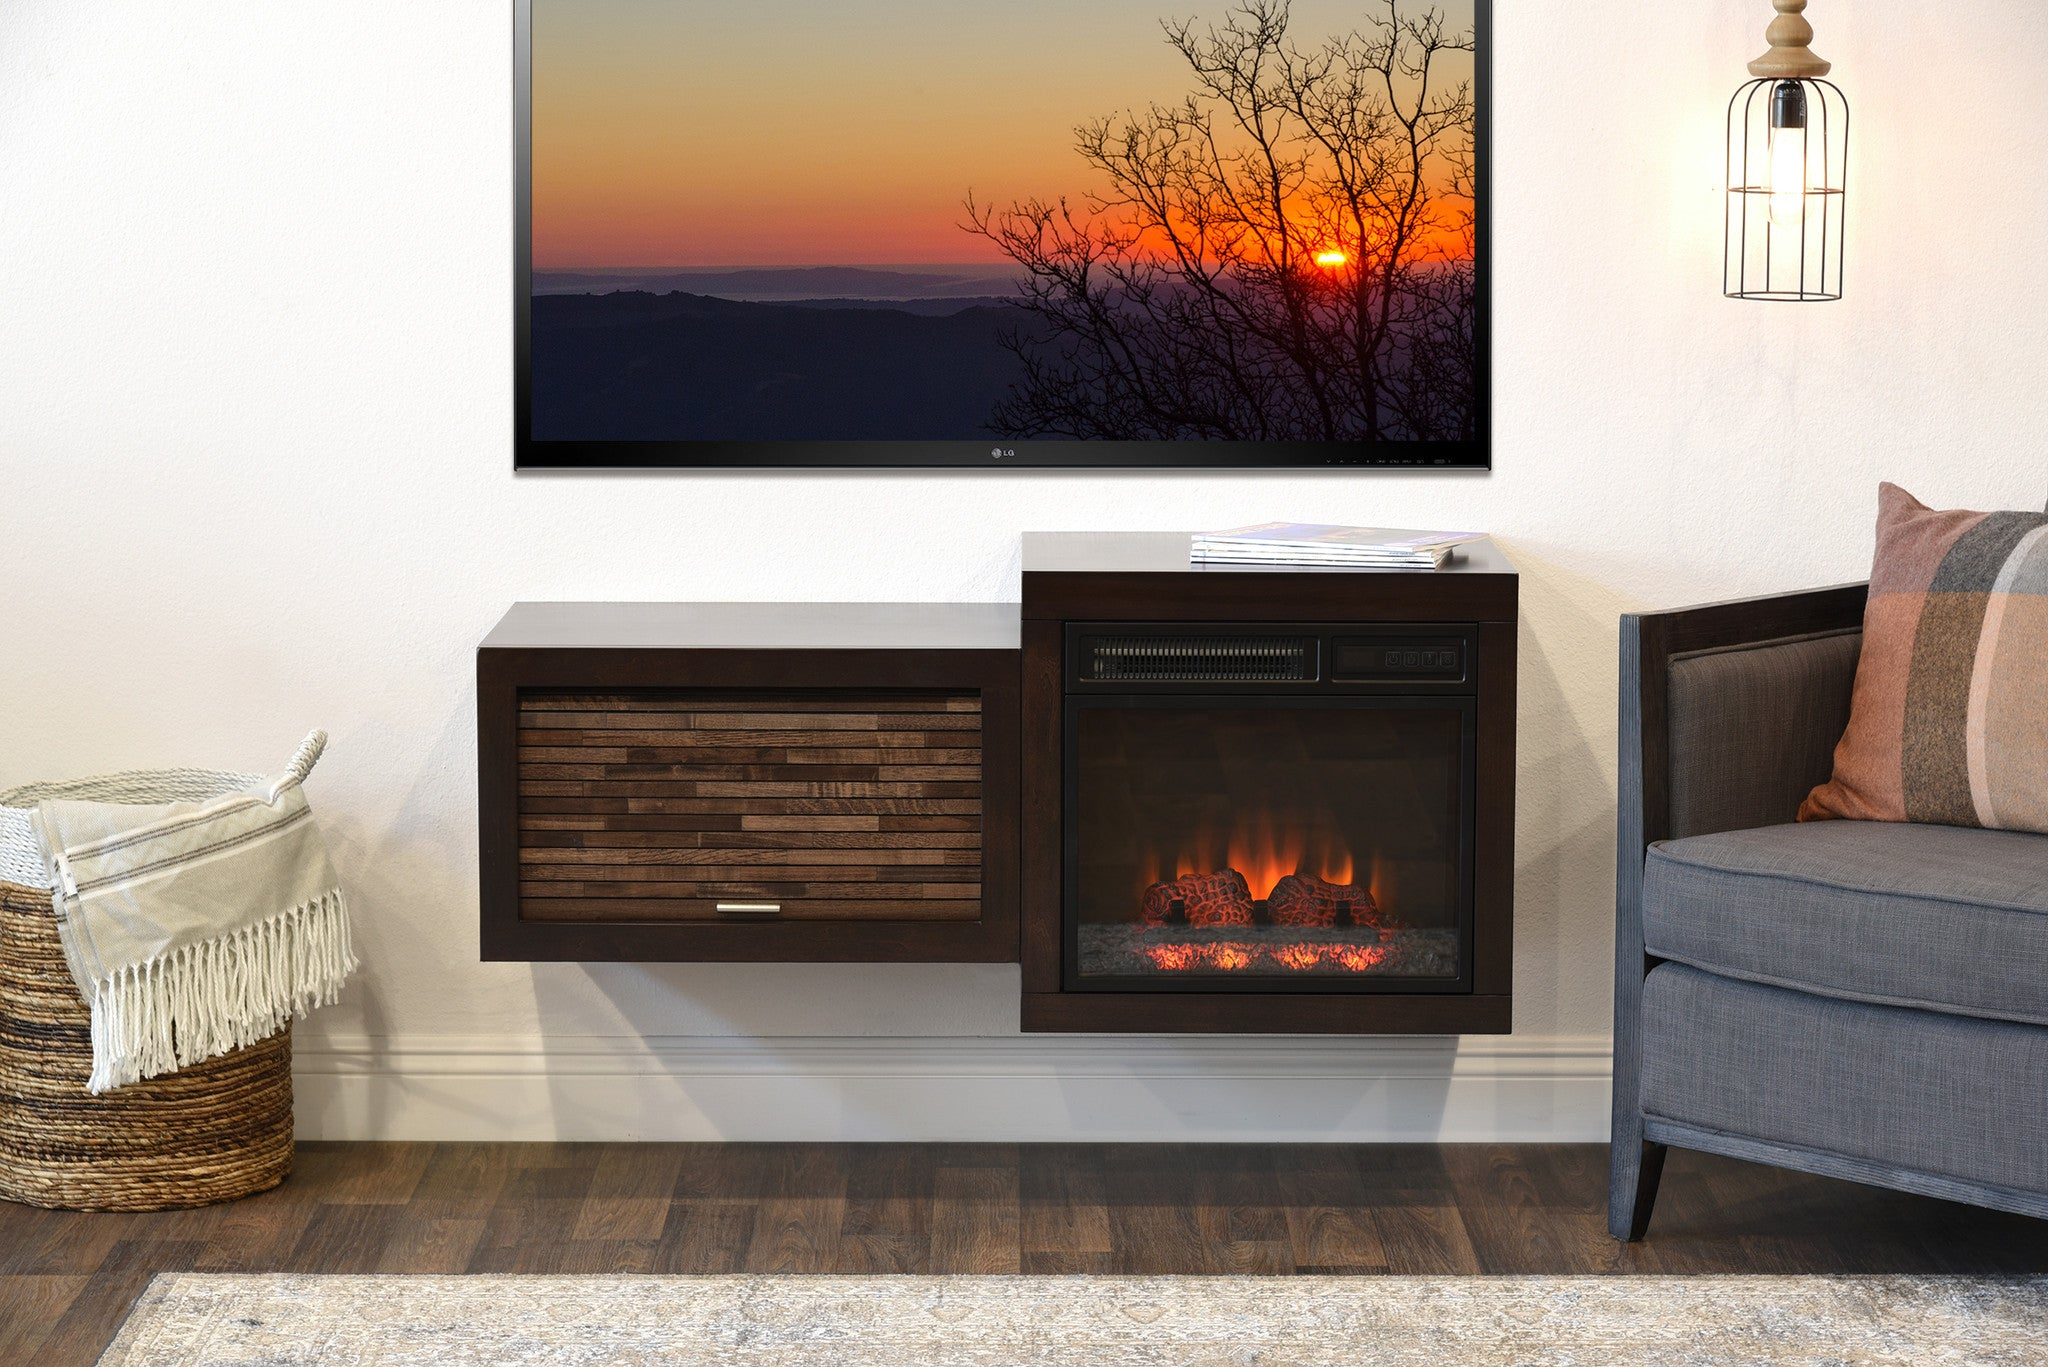 Wall Mount Floating TV Media Stand With Fireplace - Small ...